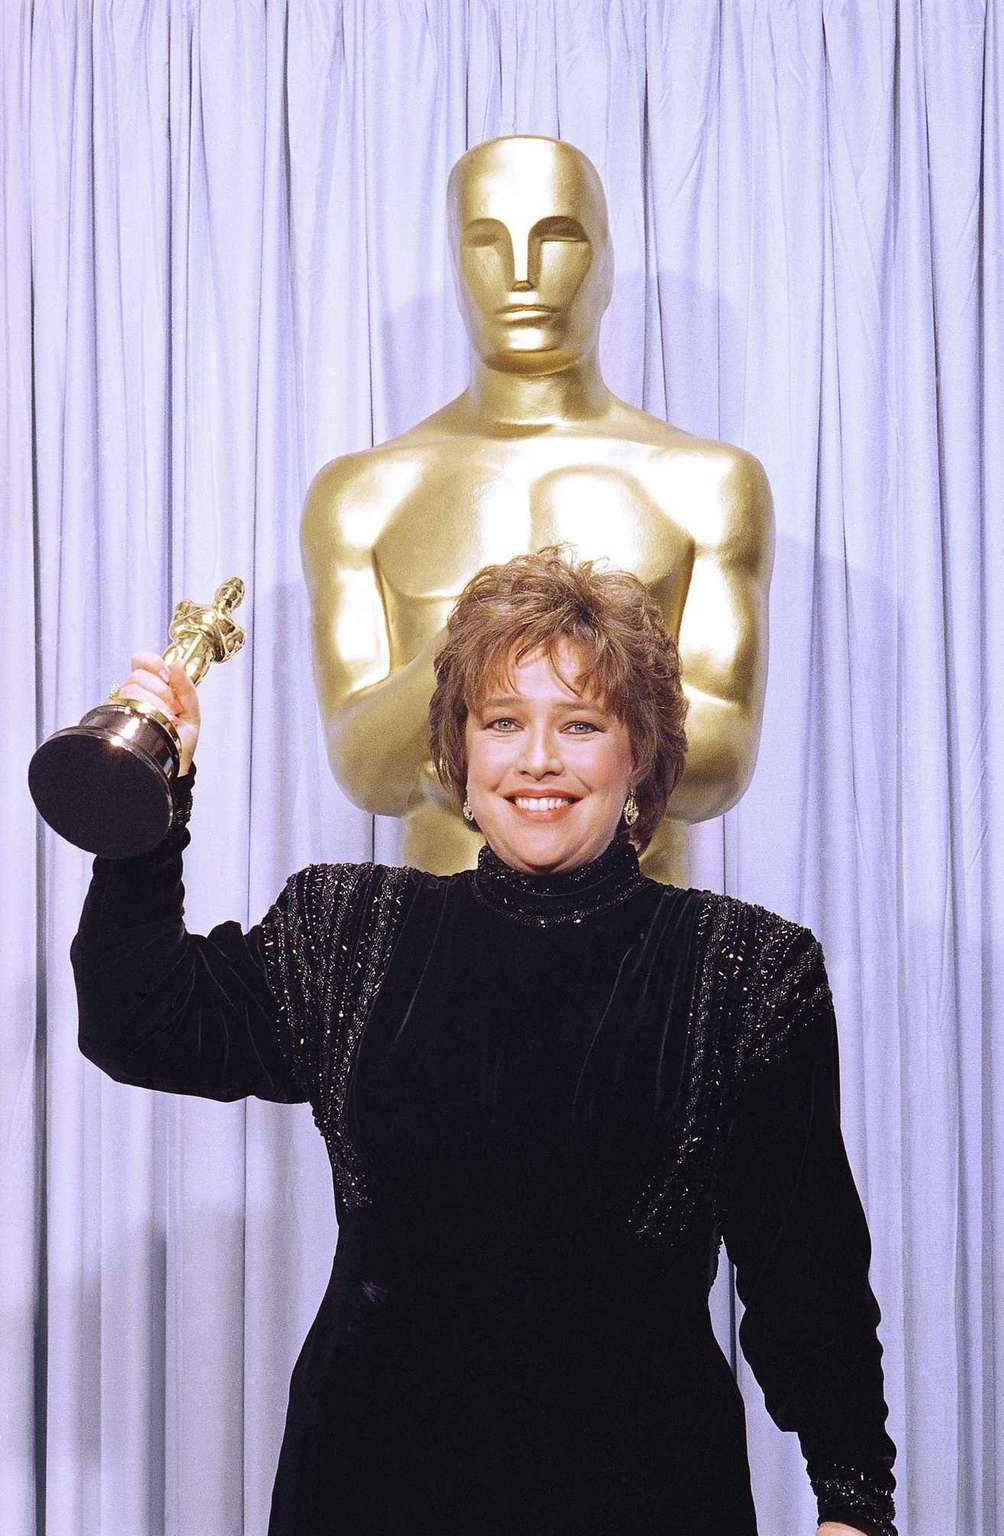 Actor Kathy Bates, holding the Oscar statuette she